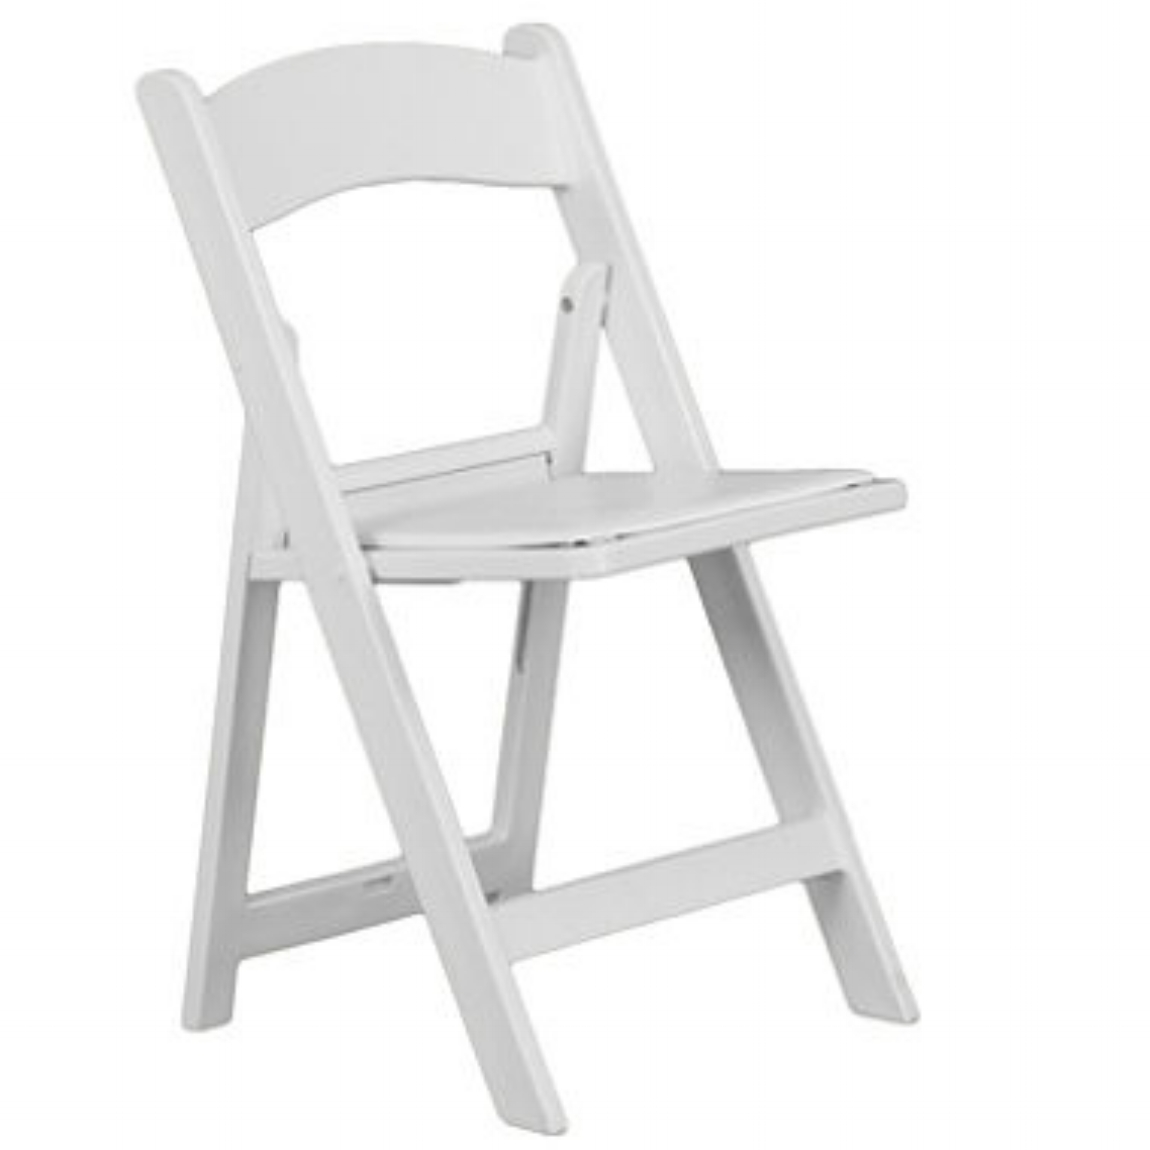 Resin Chairs White Resin Deluxe Folding Chairs